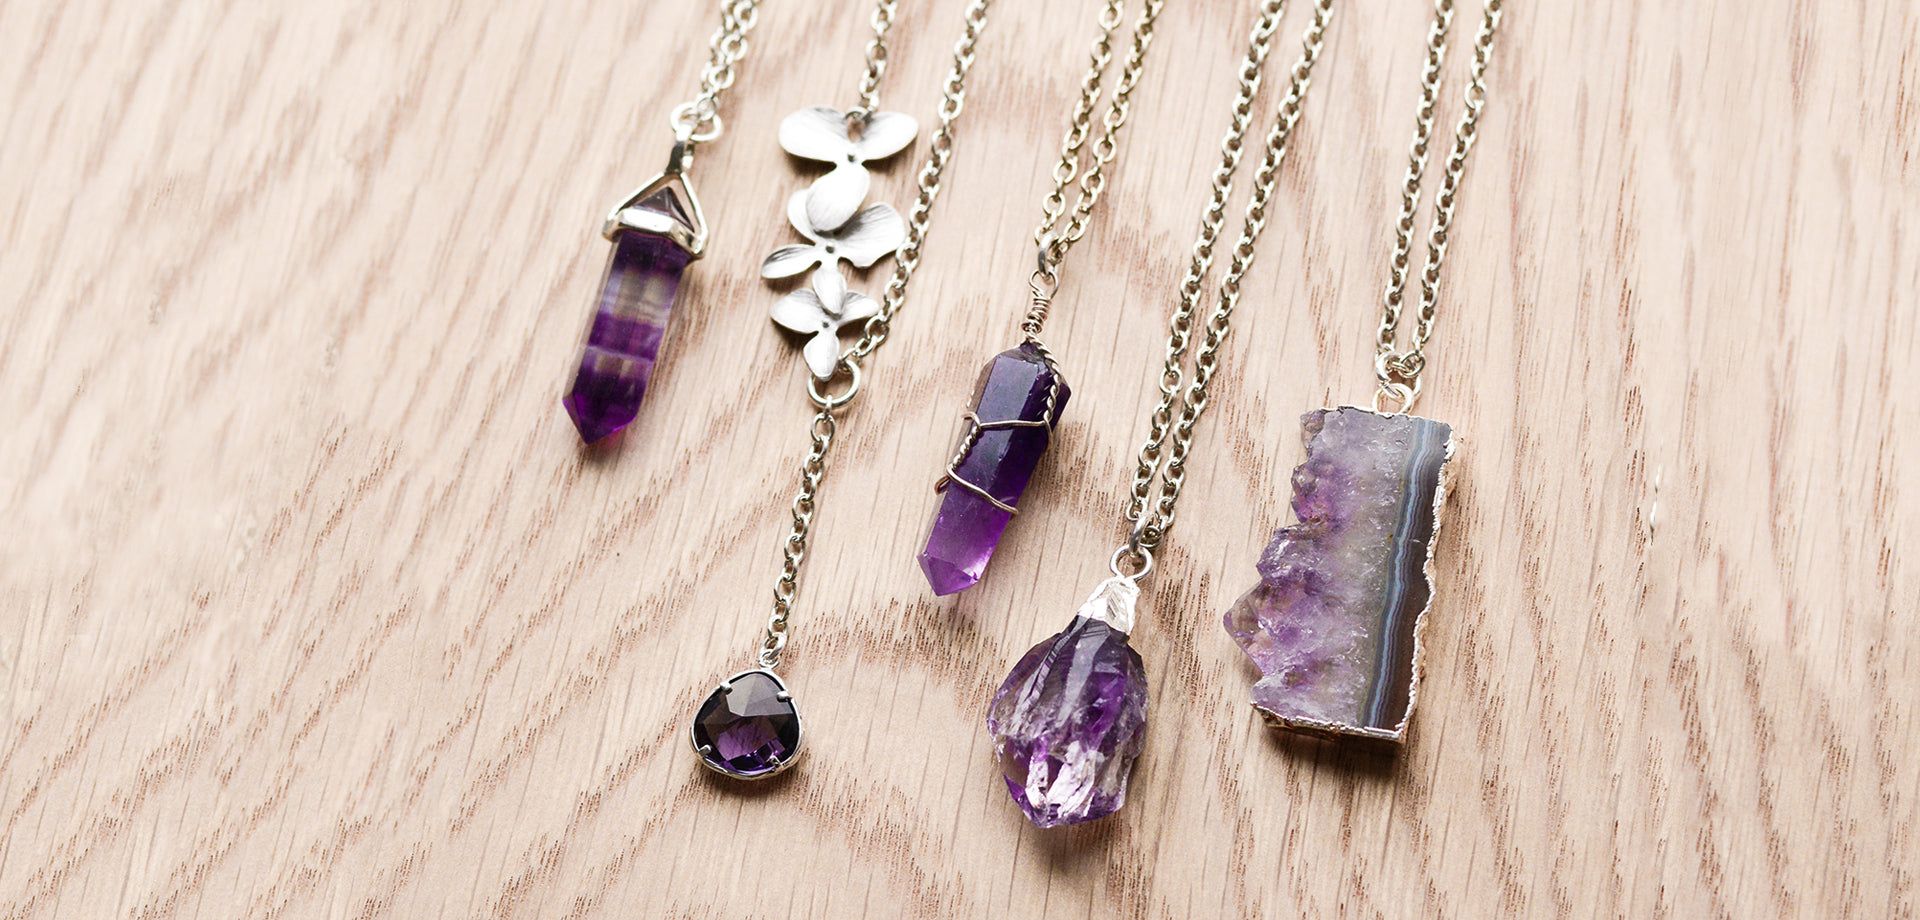 Amethyst gemstone crystal necklaces. Treat yourself to some beautiful on-trend crystal jewellery. Take a look at our favourite handmade pieces.